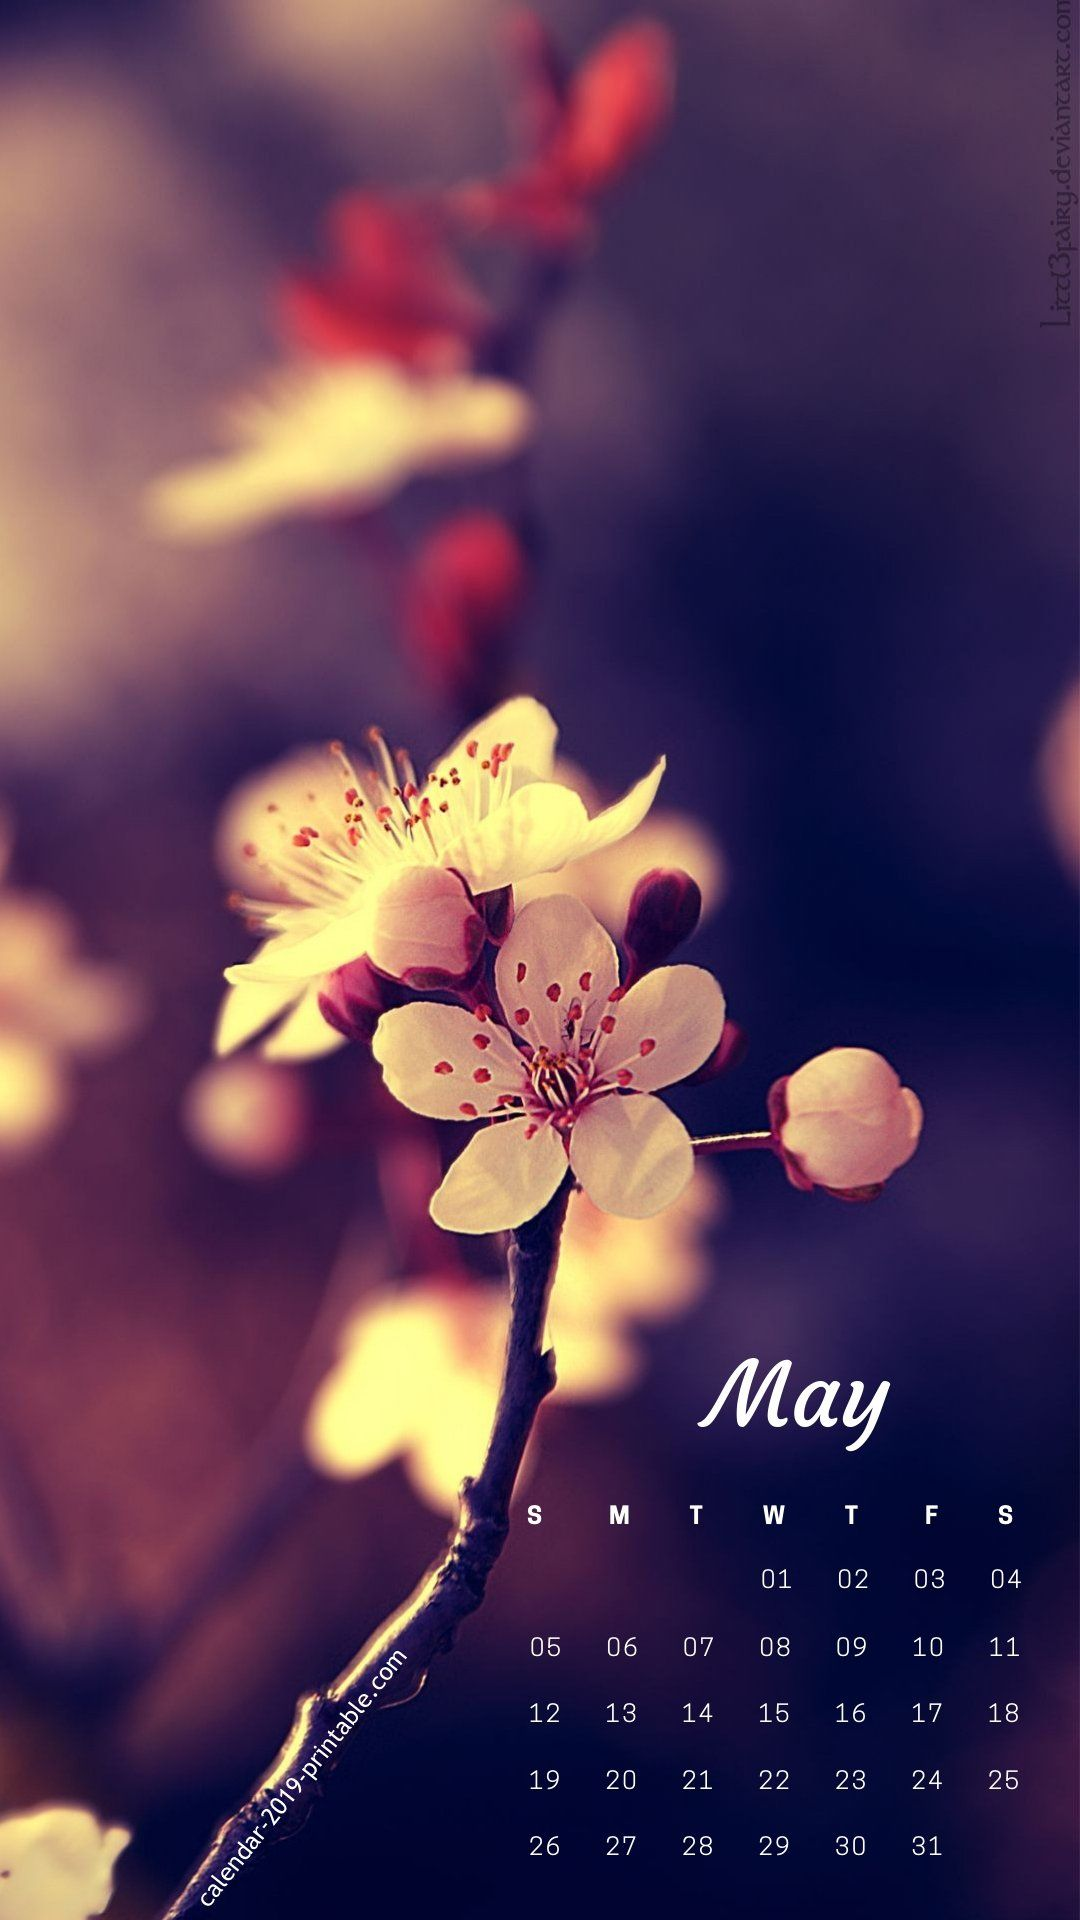 may 2019 iphone calendar flower wallpaper Desktop